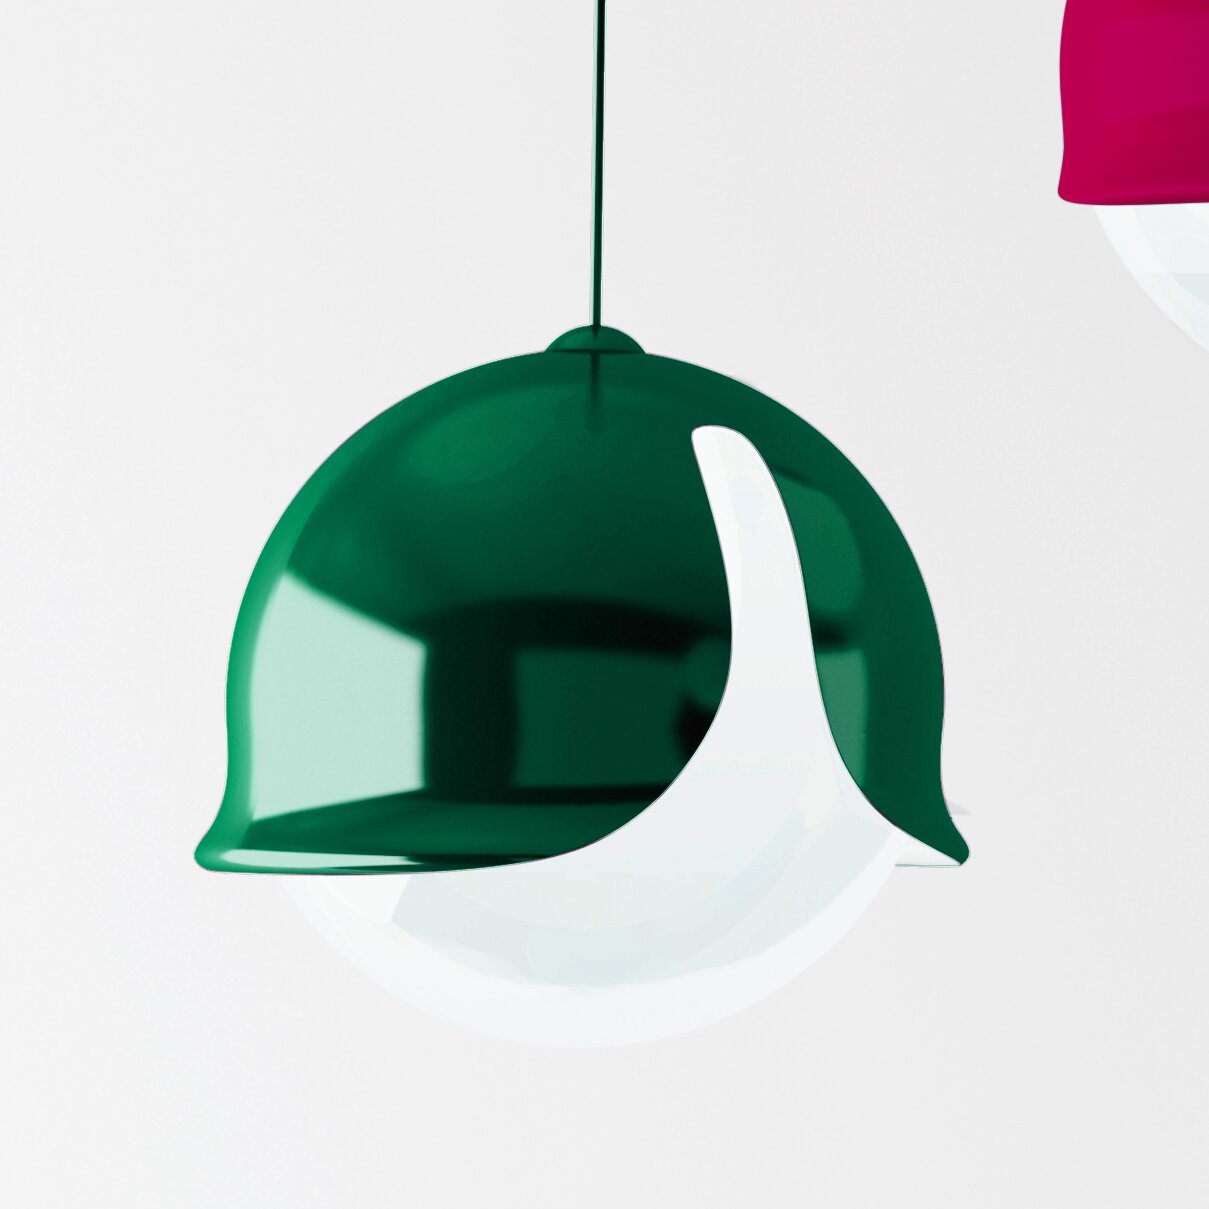 Innermost Snowdrop Globe Pendant Wayfair Uk